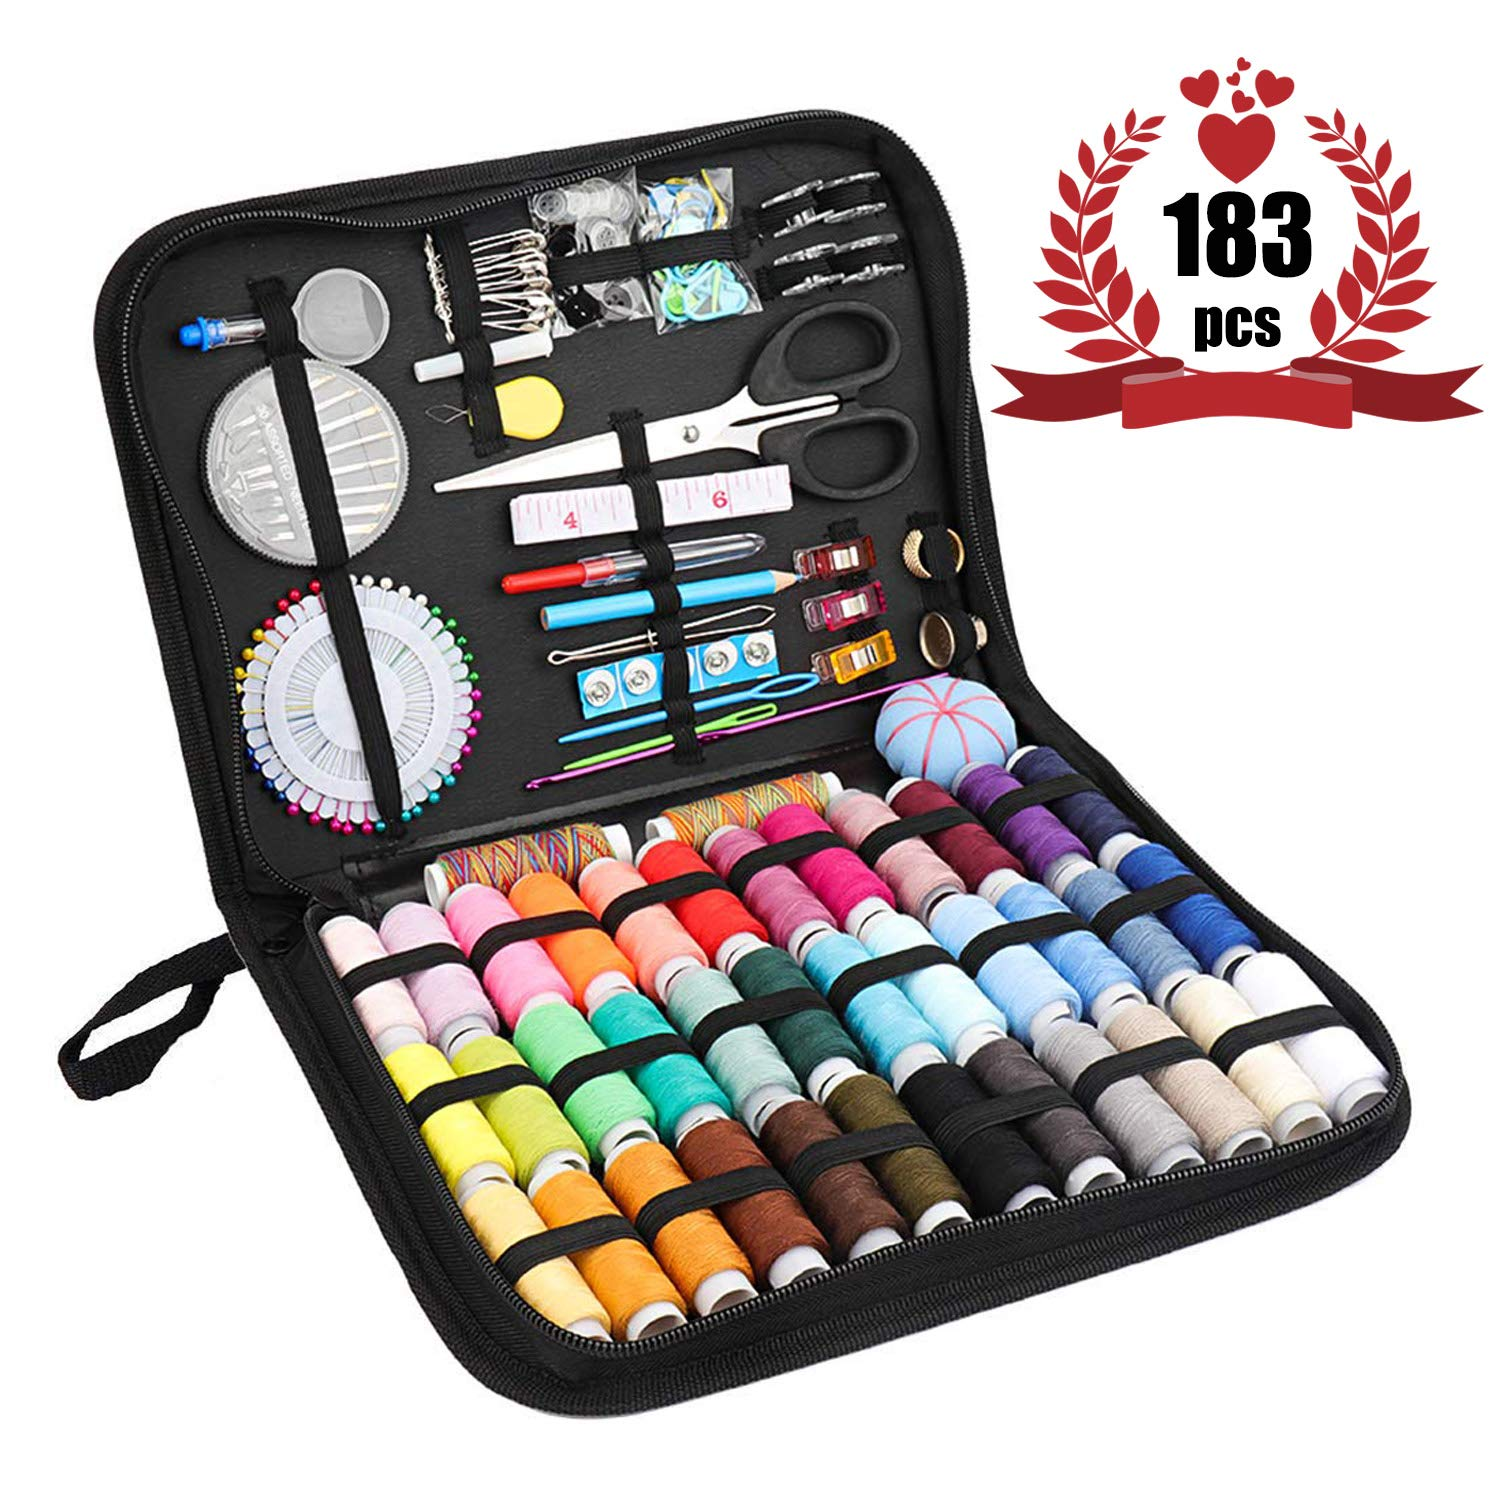 Travel Sewing Kits for Adults, Perskii Premium DIY Sewing Supplies with 183pcs Sewing Accessories, 38 XL Threads, Needles - Portable Mini Sewing Repair Kits for Traveller,Kids,Beginners, Emergency by Perskii